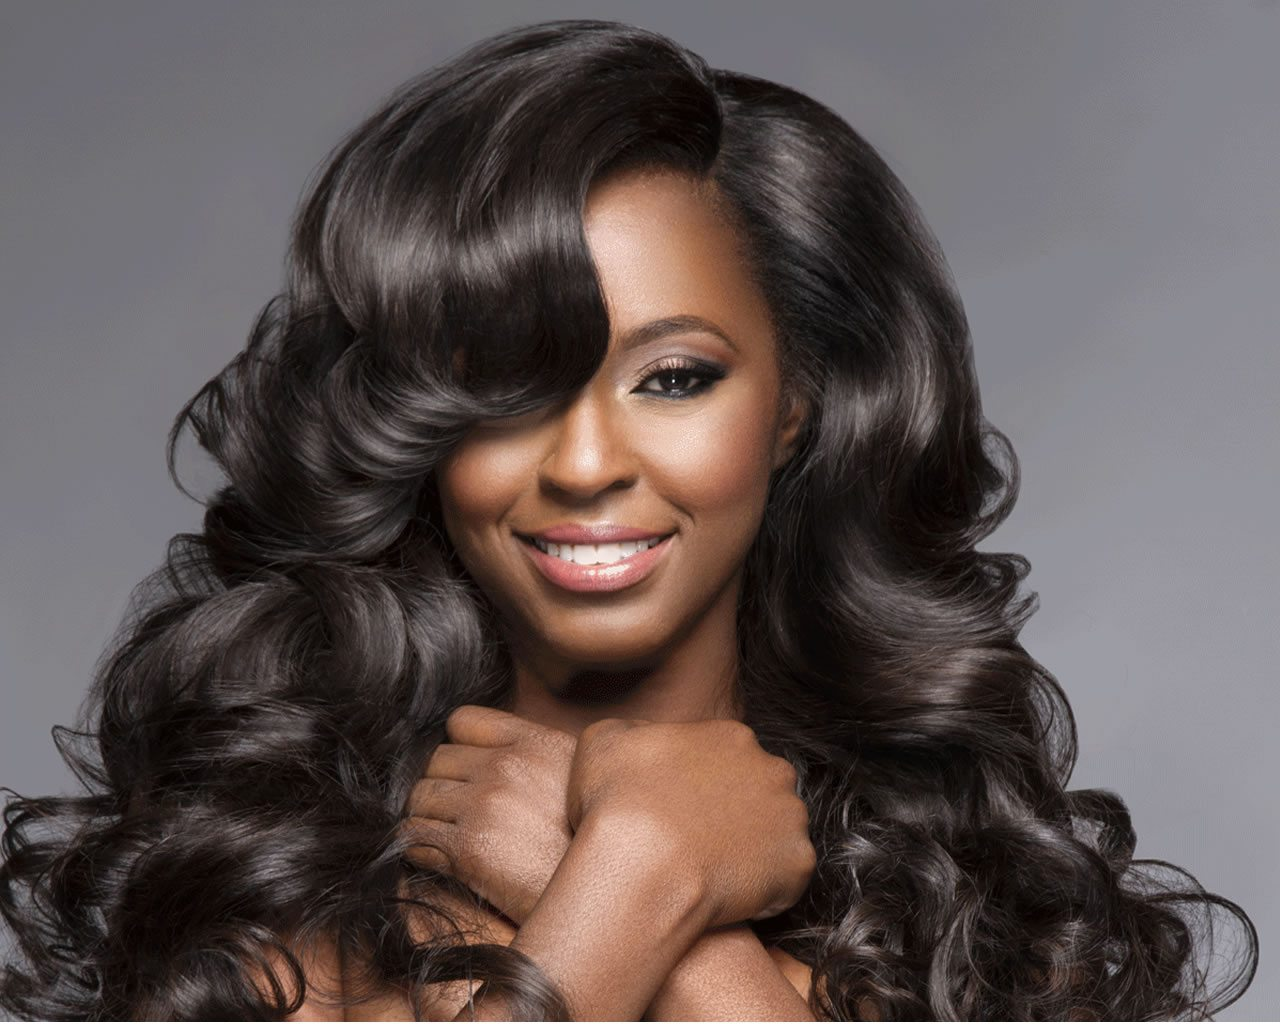 Stupendous Top 10 Georgeous Hairstyles Nigerian Men Love To See On Their Women Hairstyles For Women Draintrainus